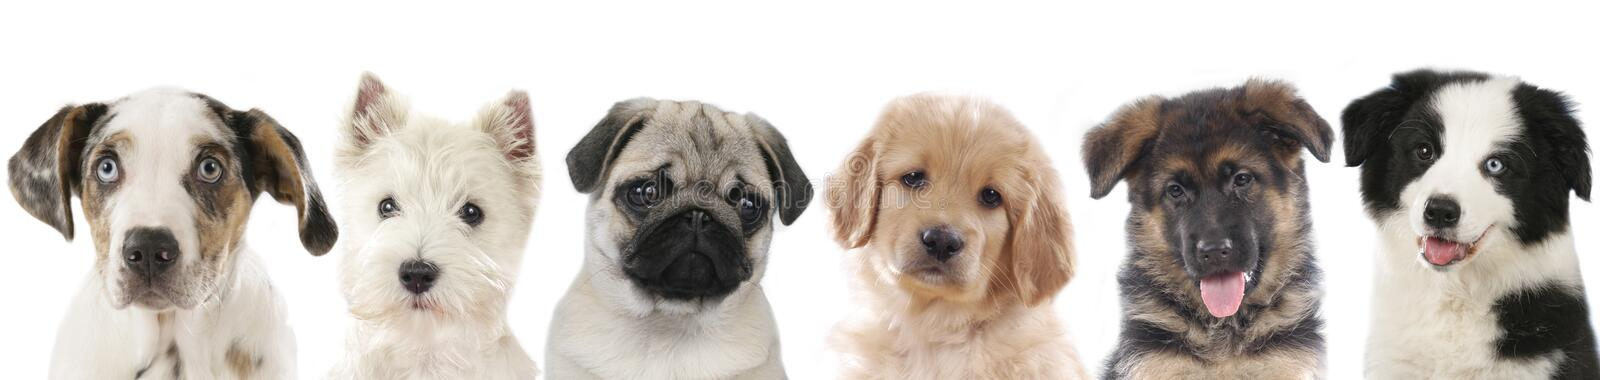 Row of different puppies, dogs stock image